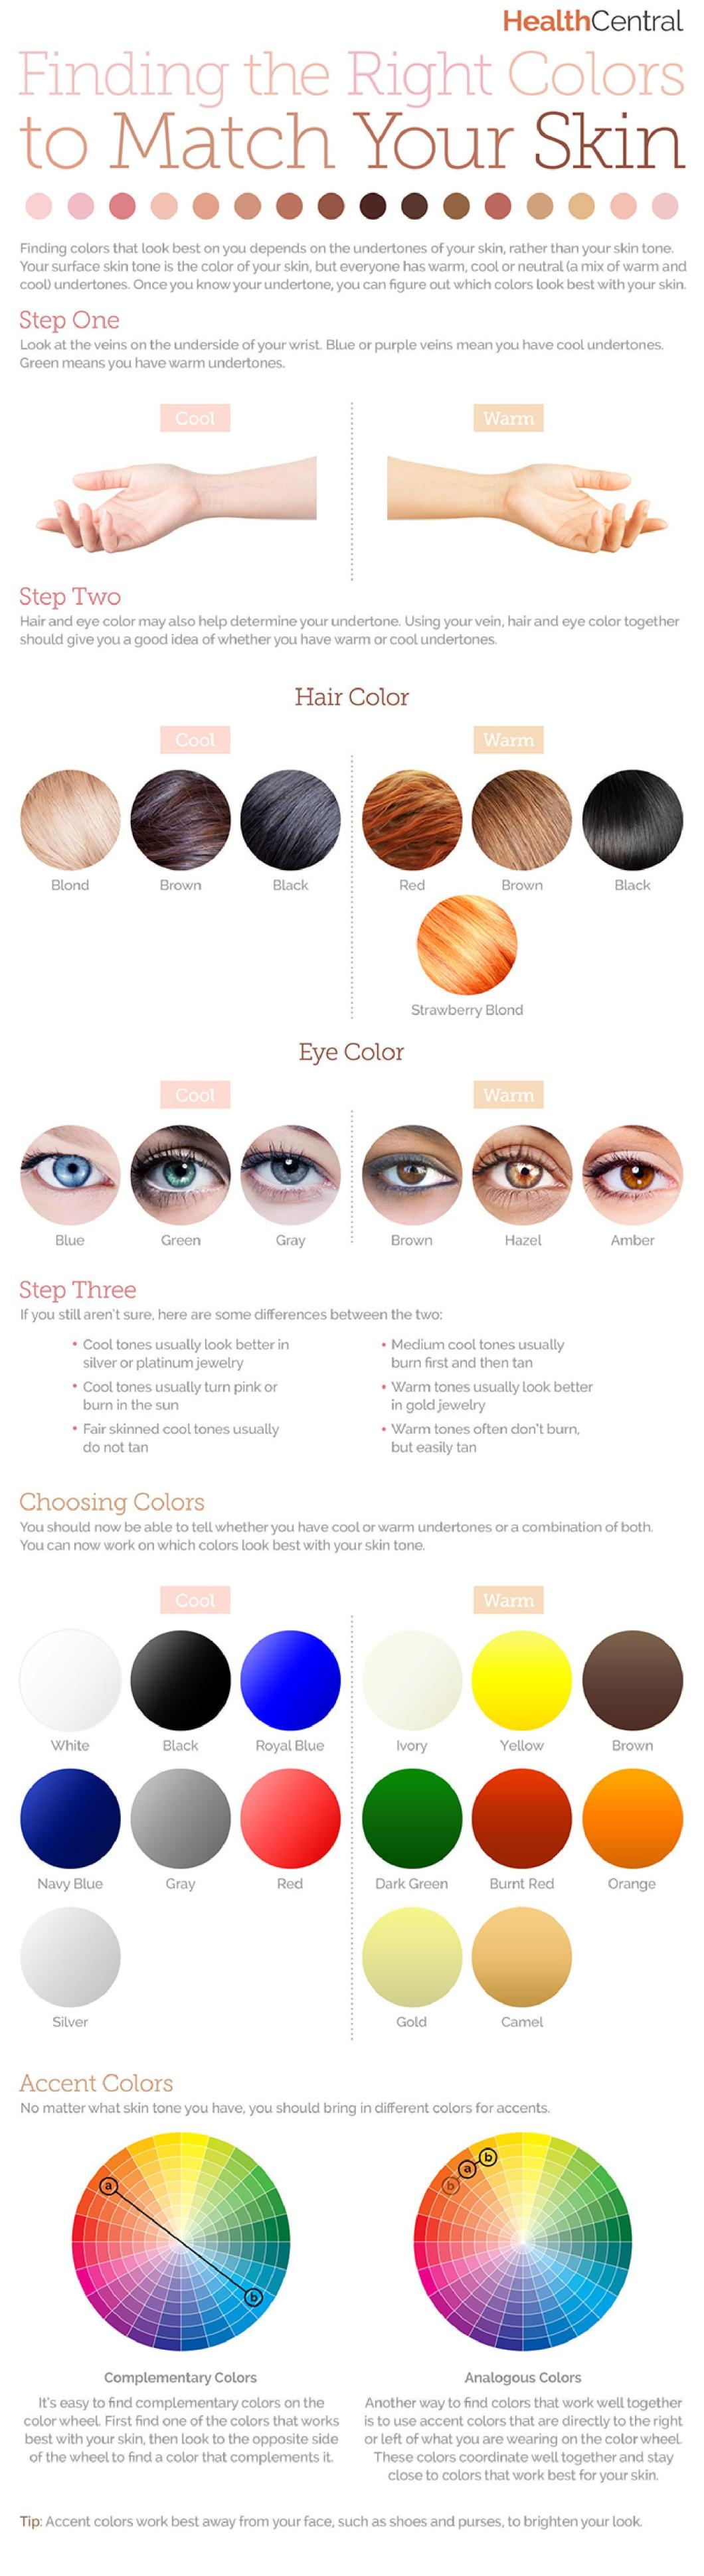 How To Find The Right Colors To Match Your Skin